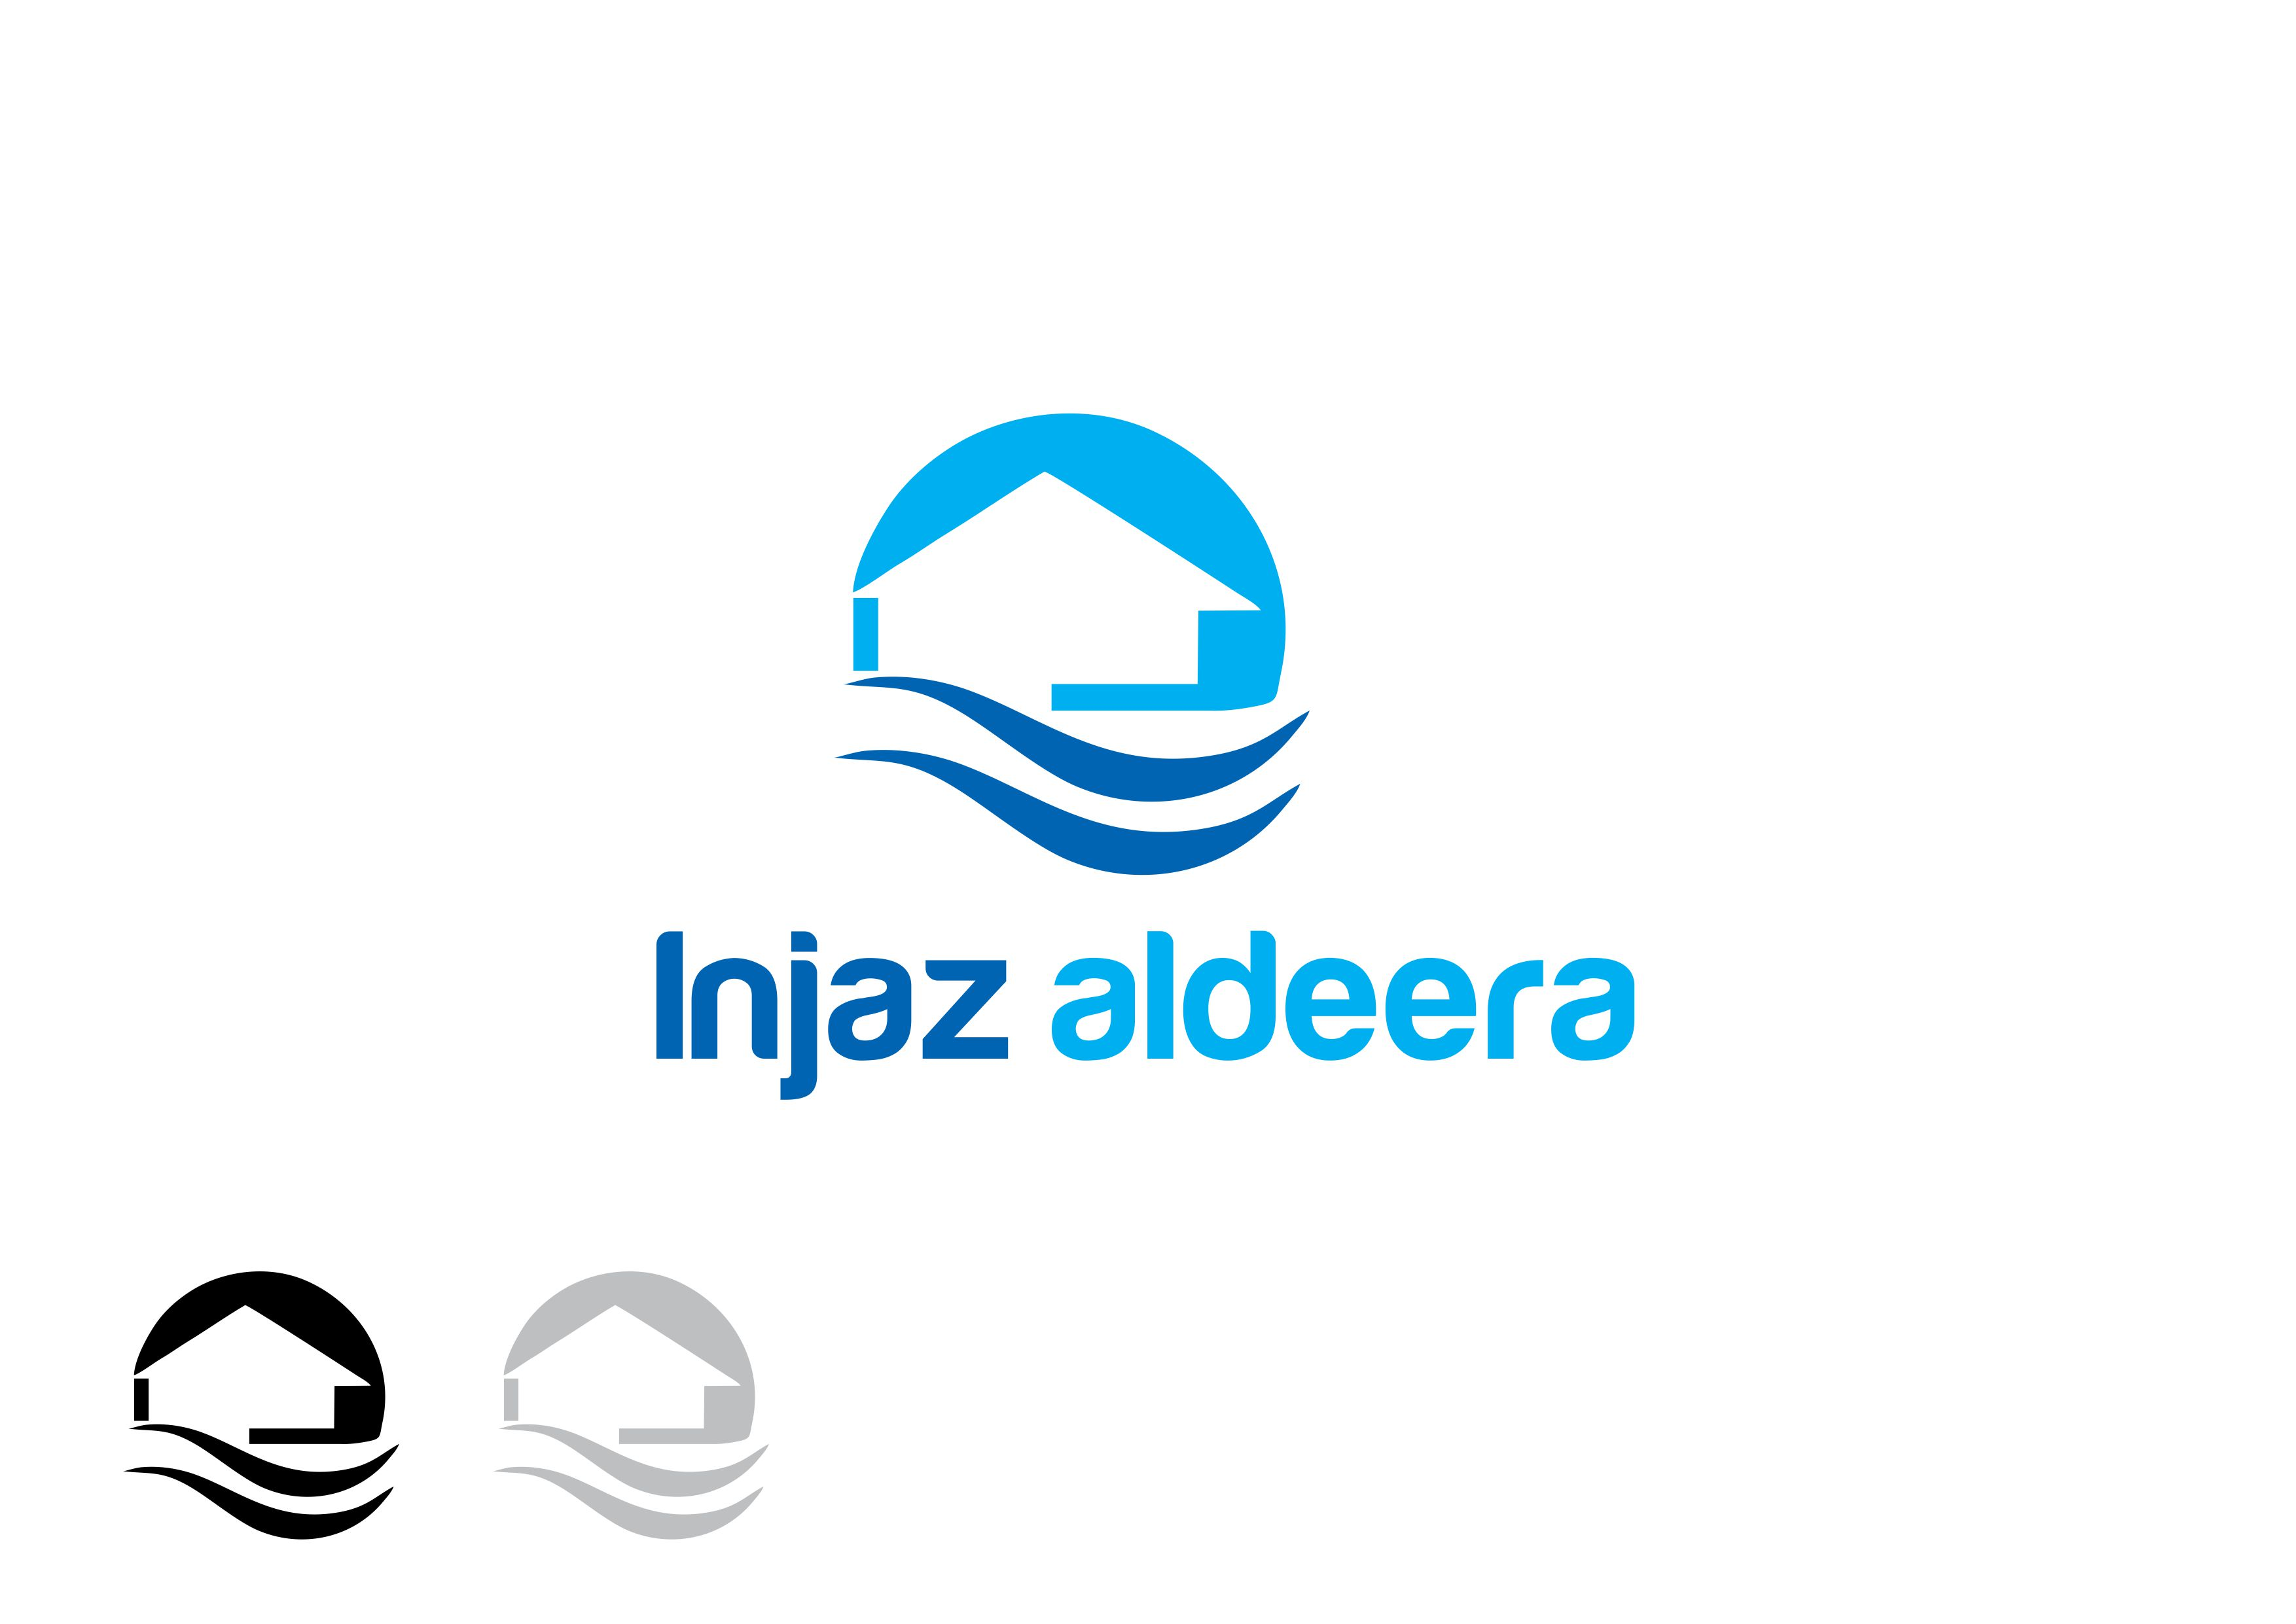 Logo Design by Tenstar Design - Entry No. 58 in the Logo Design Contest Fun Logo Design for Injaz aldeera.